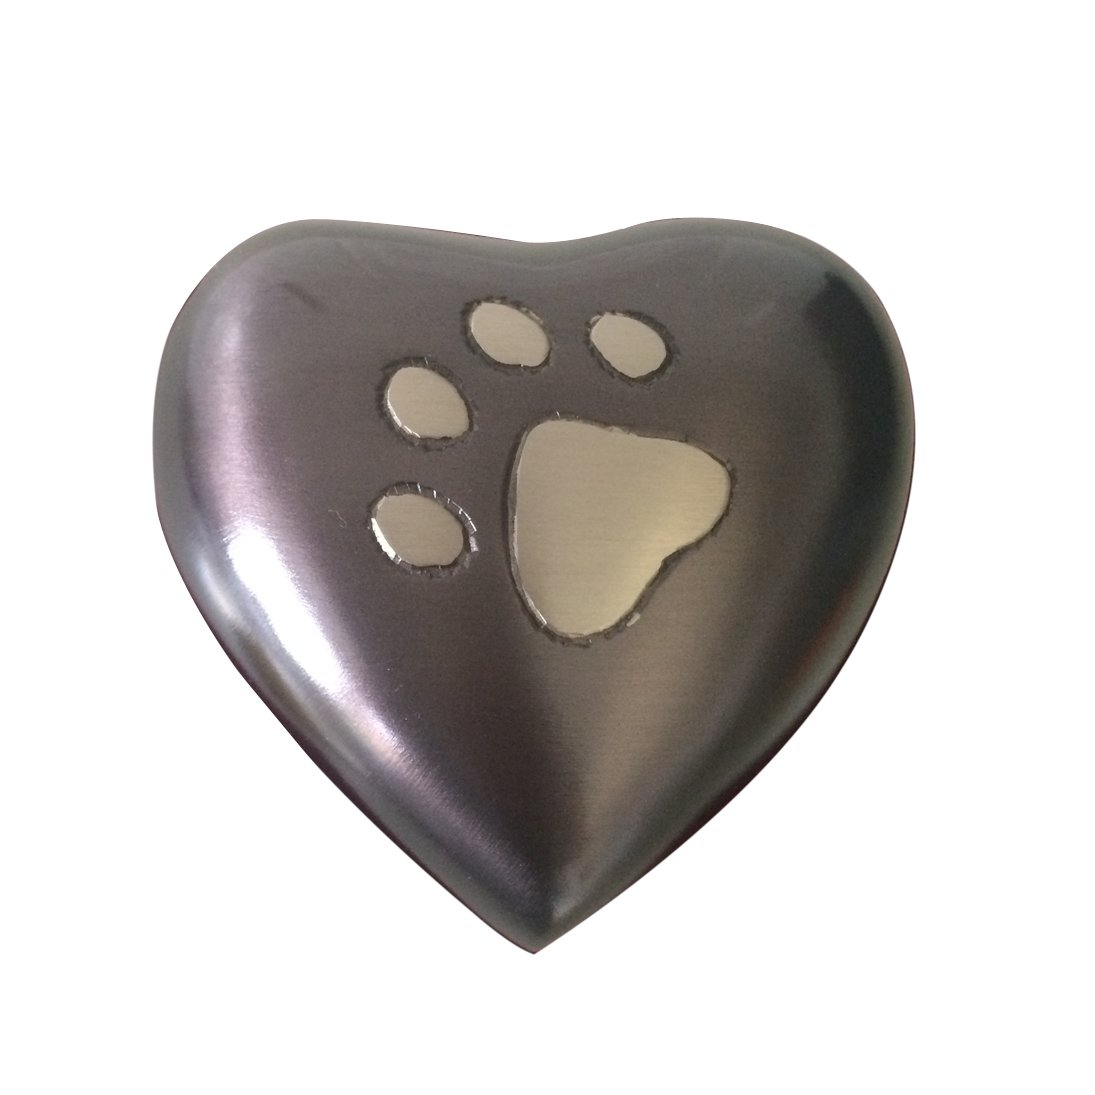 Mini Heart Shape Midnight Paw Print Pet Cremation Urn For Pet Ashes With Stand